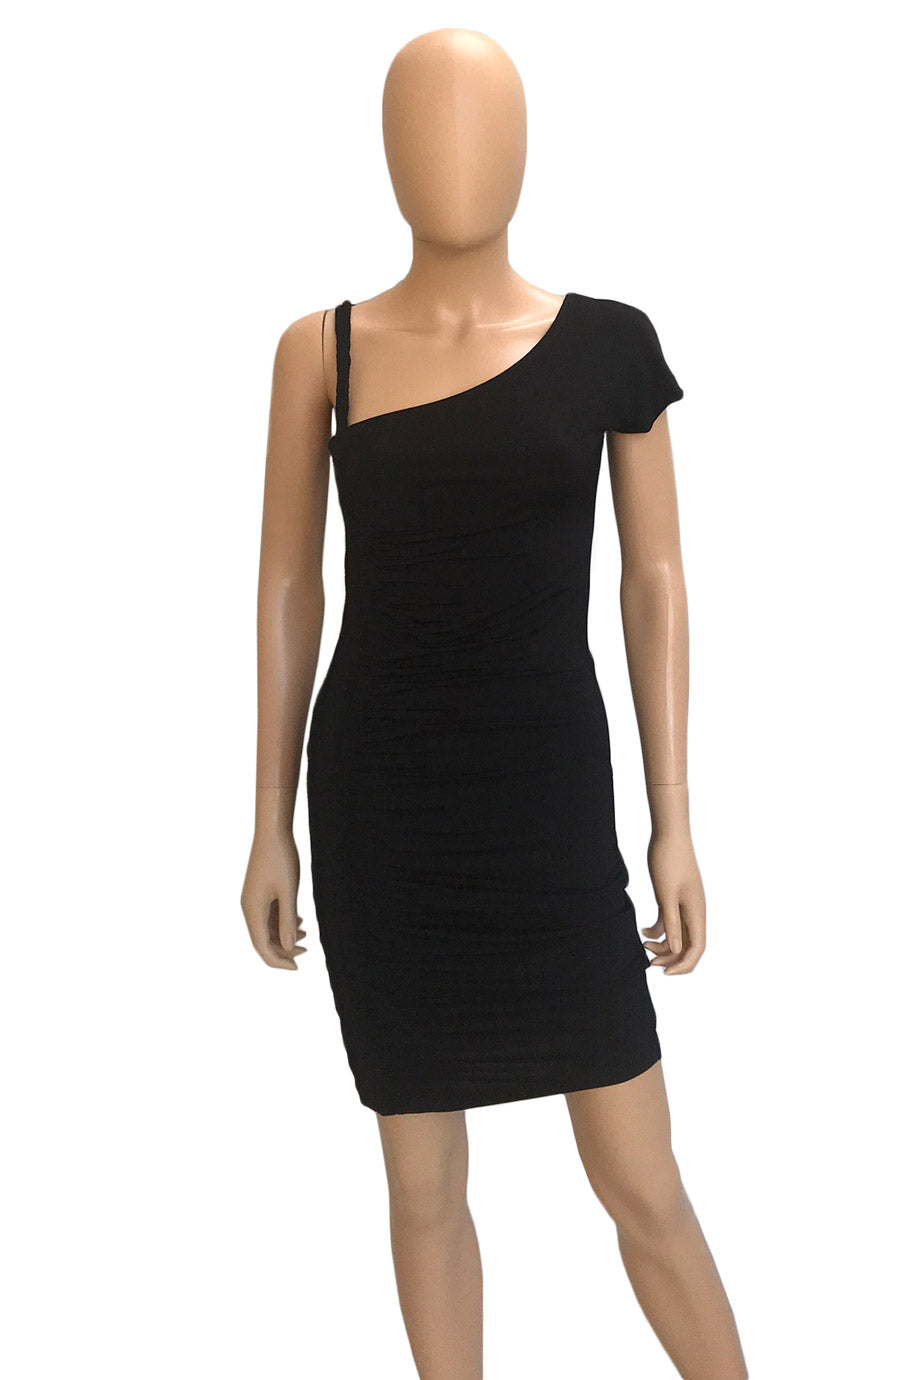 Just Cavalli Black Ruched Satin-Jersey Asymmetric Dress / Sz S-Style Therapy